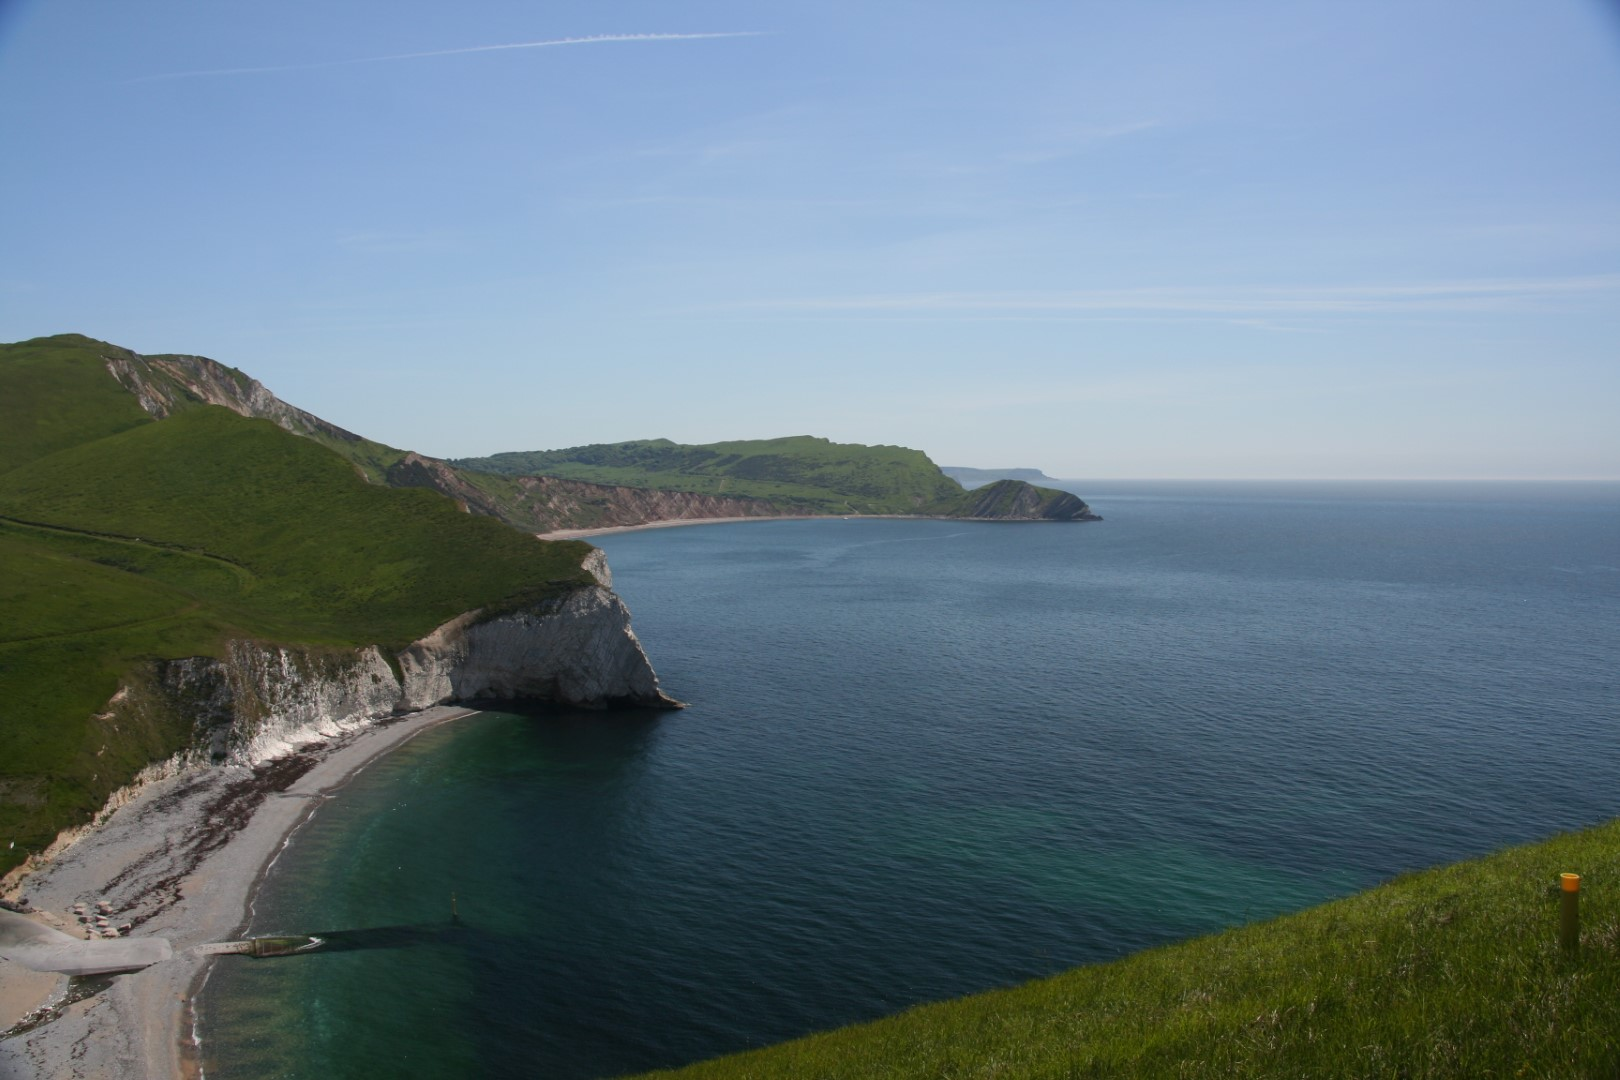 View all the way back - the sea is this clear in summer!